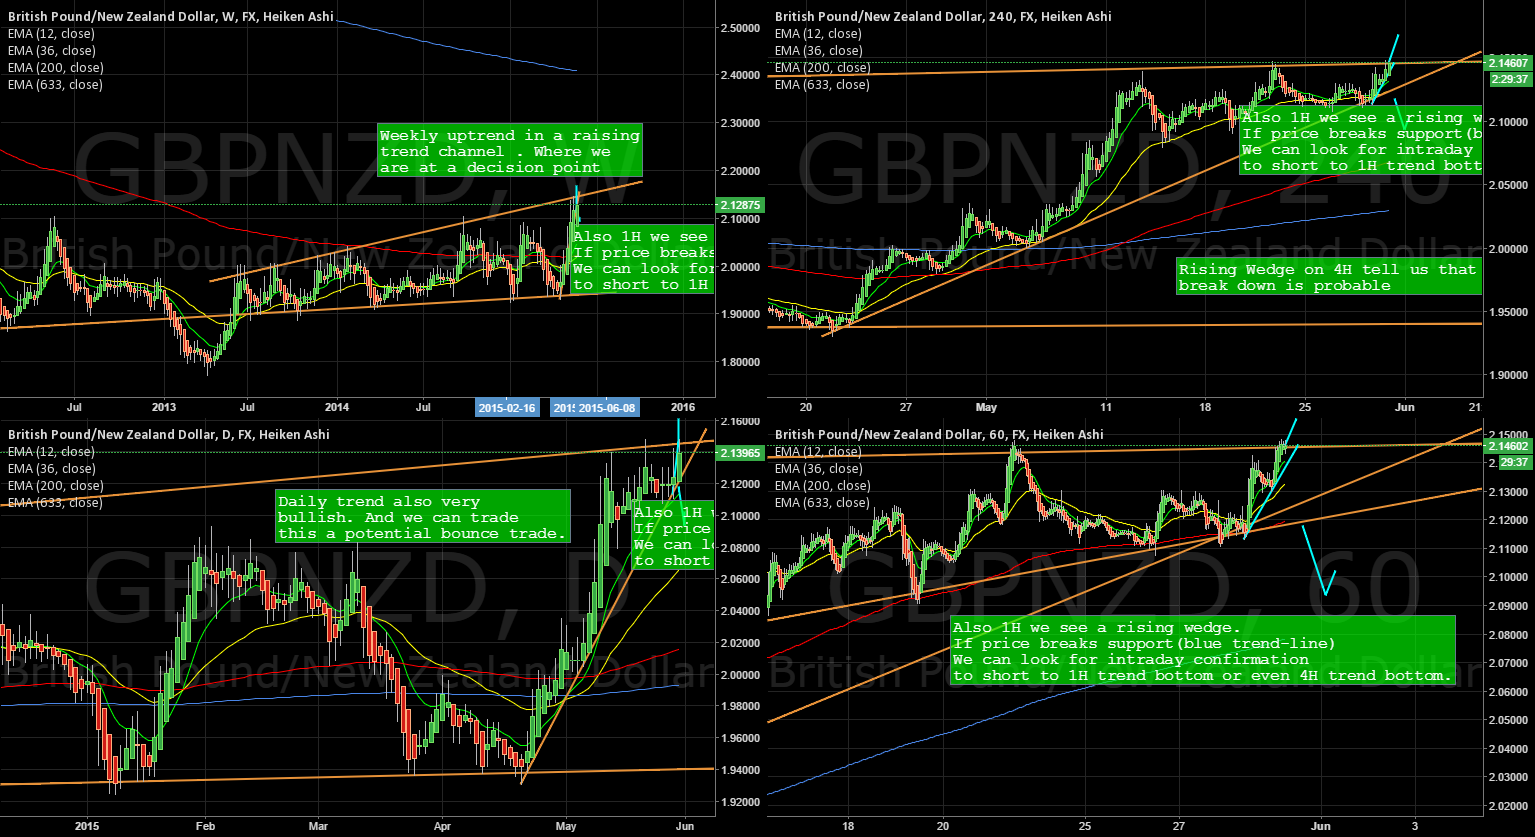 GBPNZD at a decision point break up or bounce back